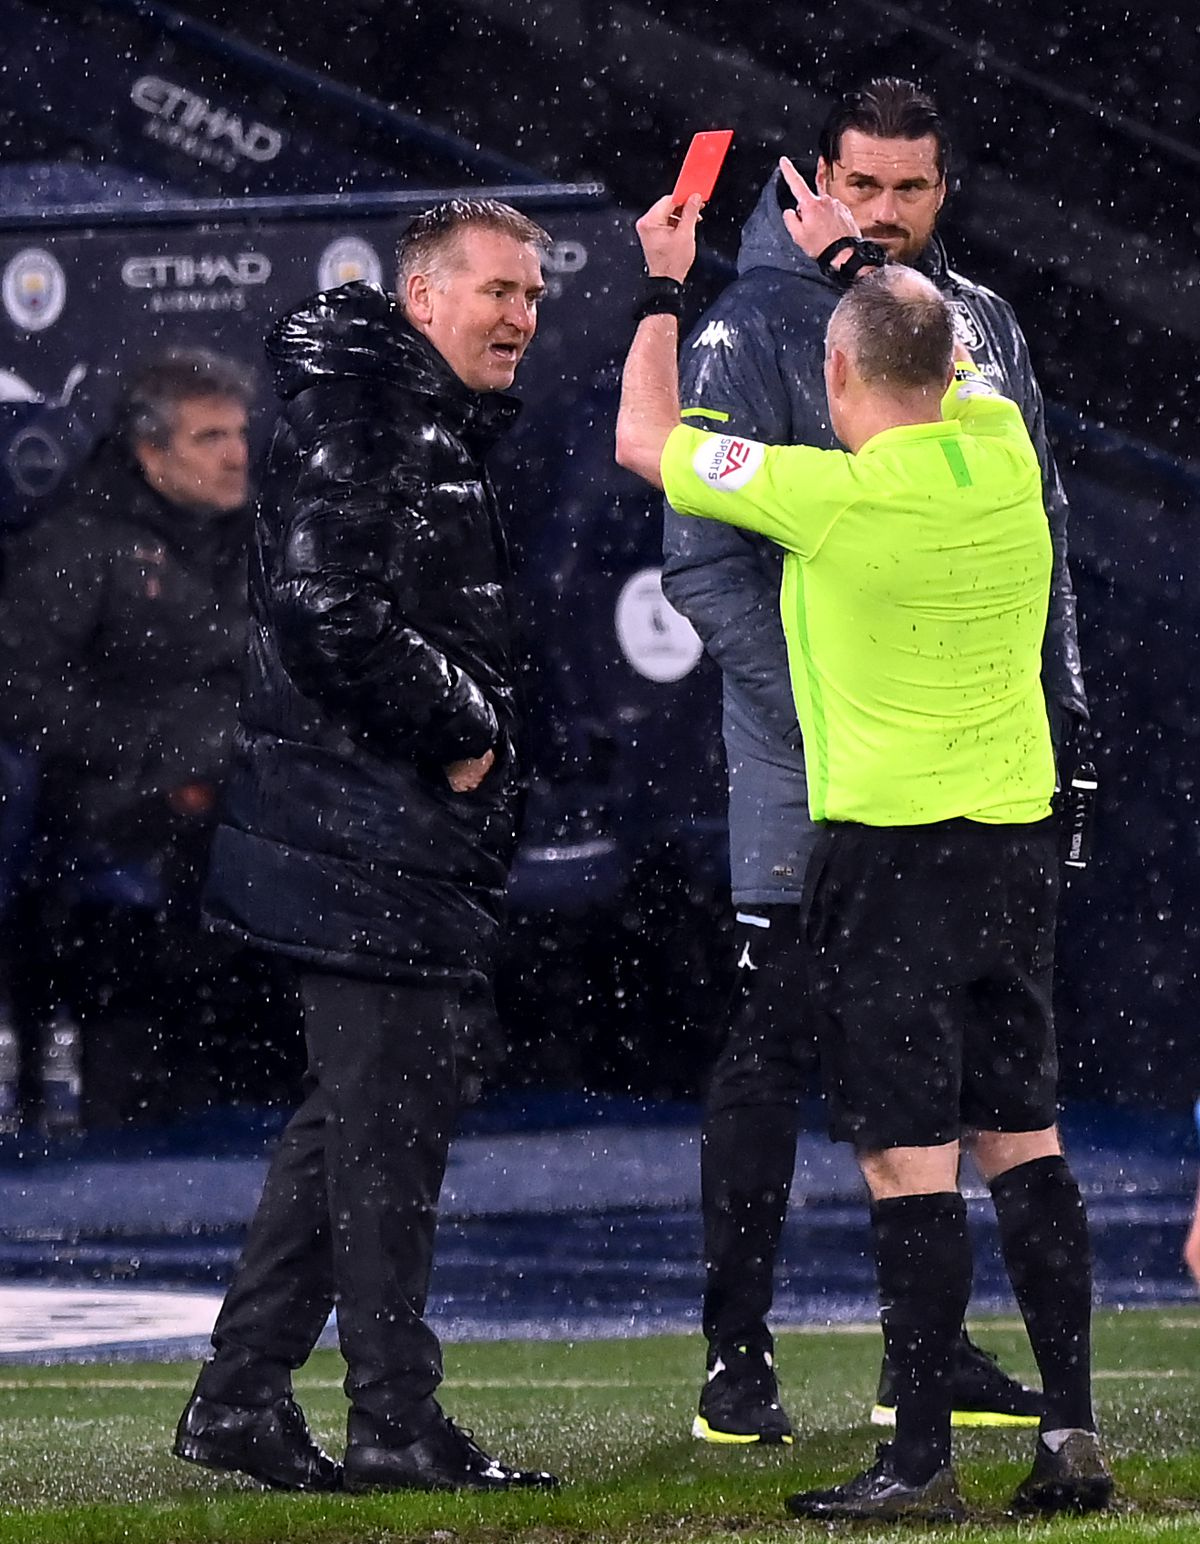 Dean Smith being shown a red card by Referee Jonathan Moss.